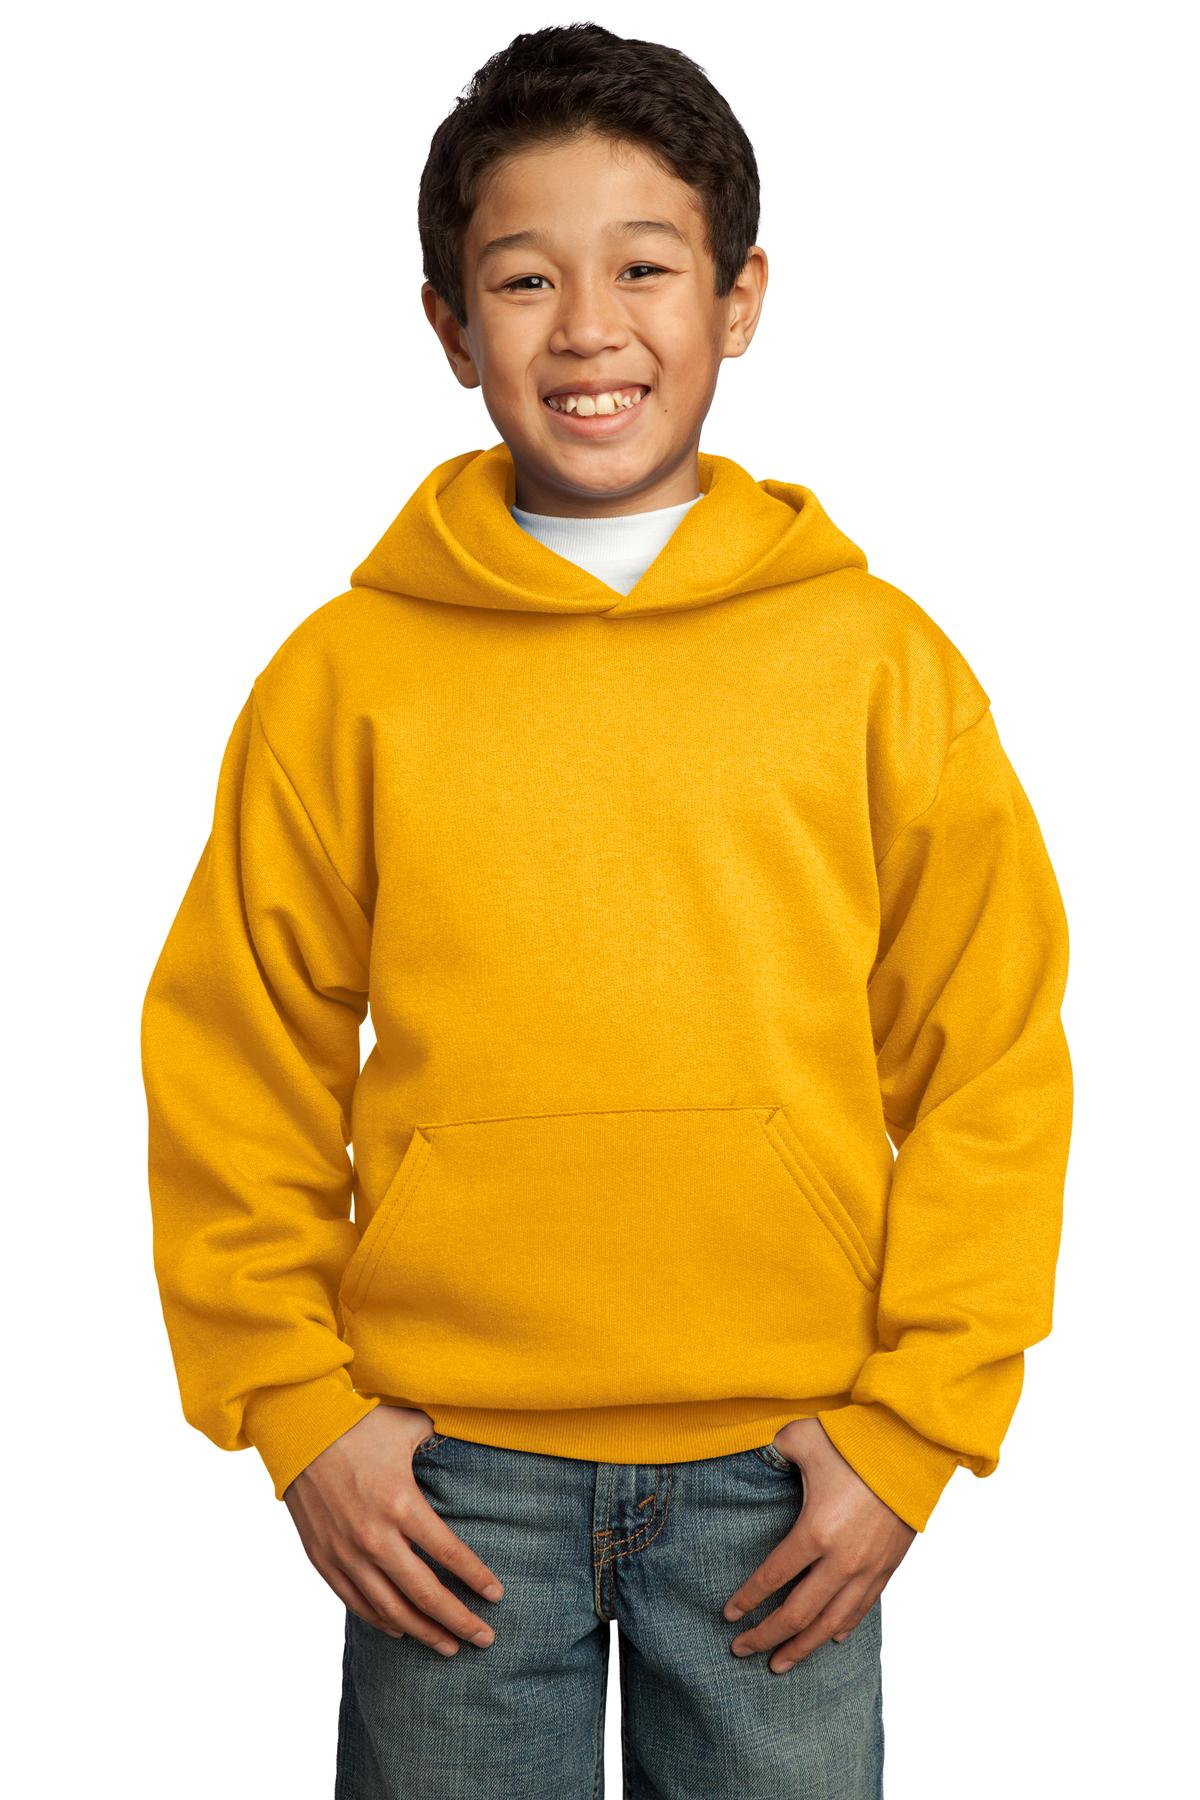 Gold Port & Company - Youth Core Fleece Pullover Hooded Sweatshirt.